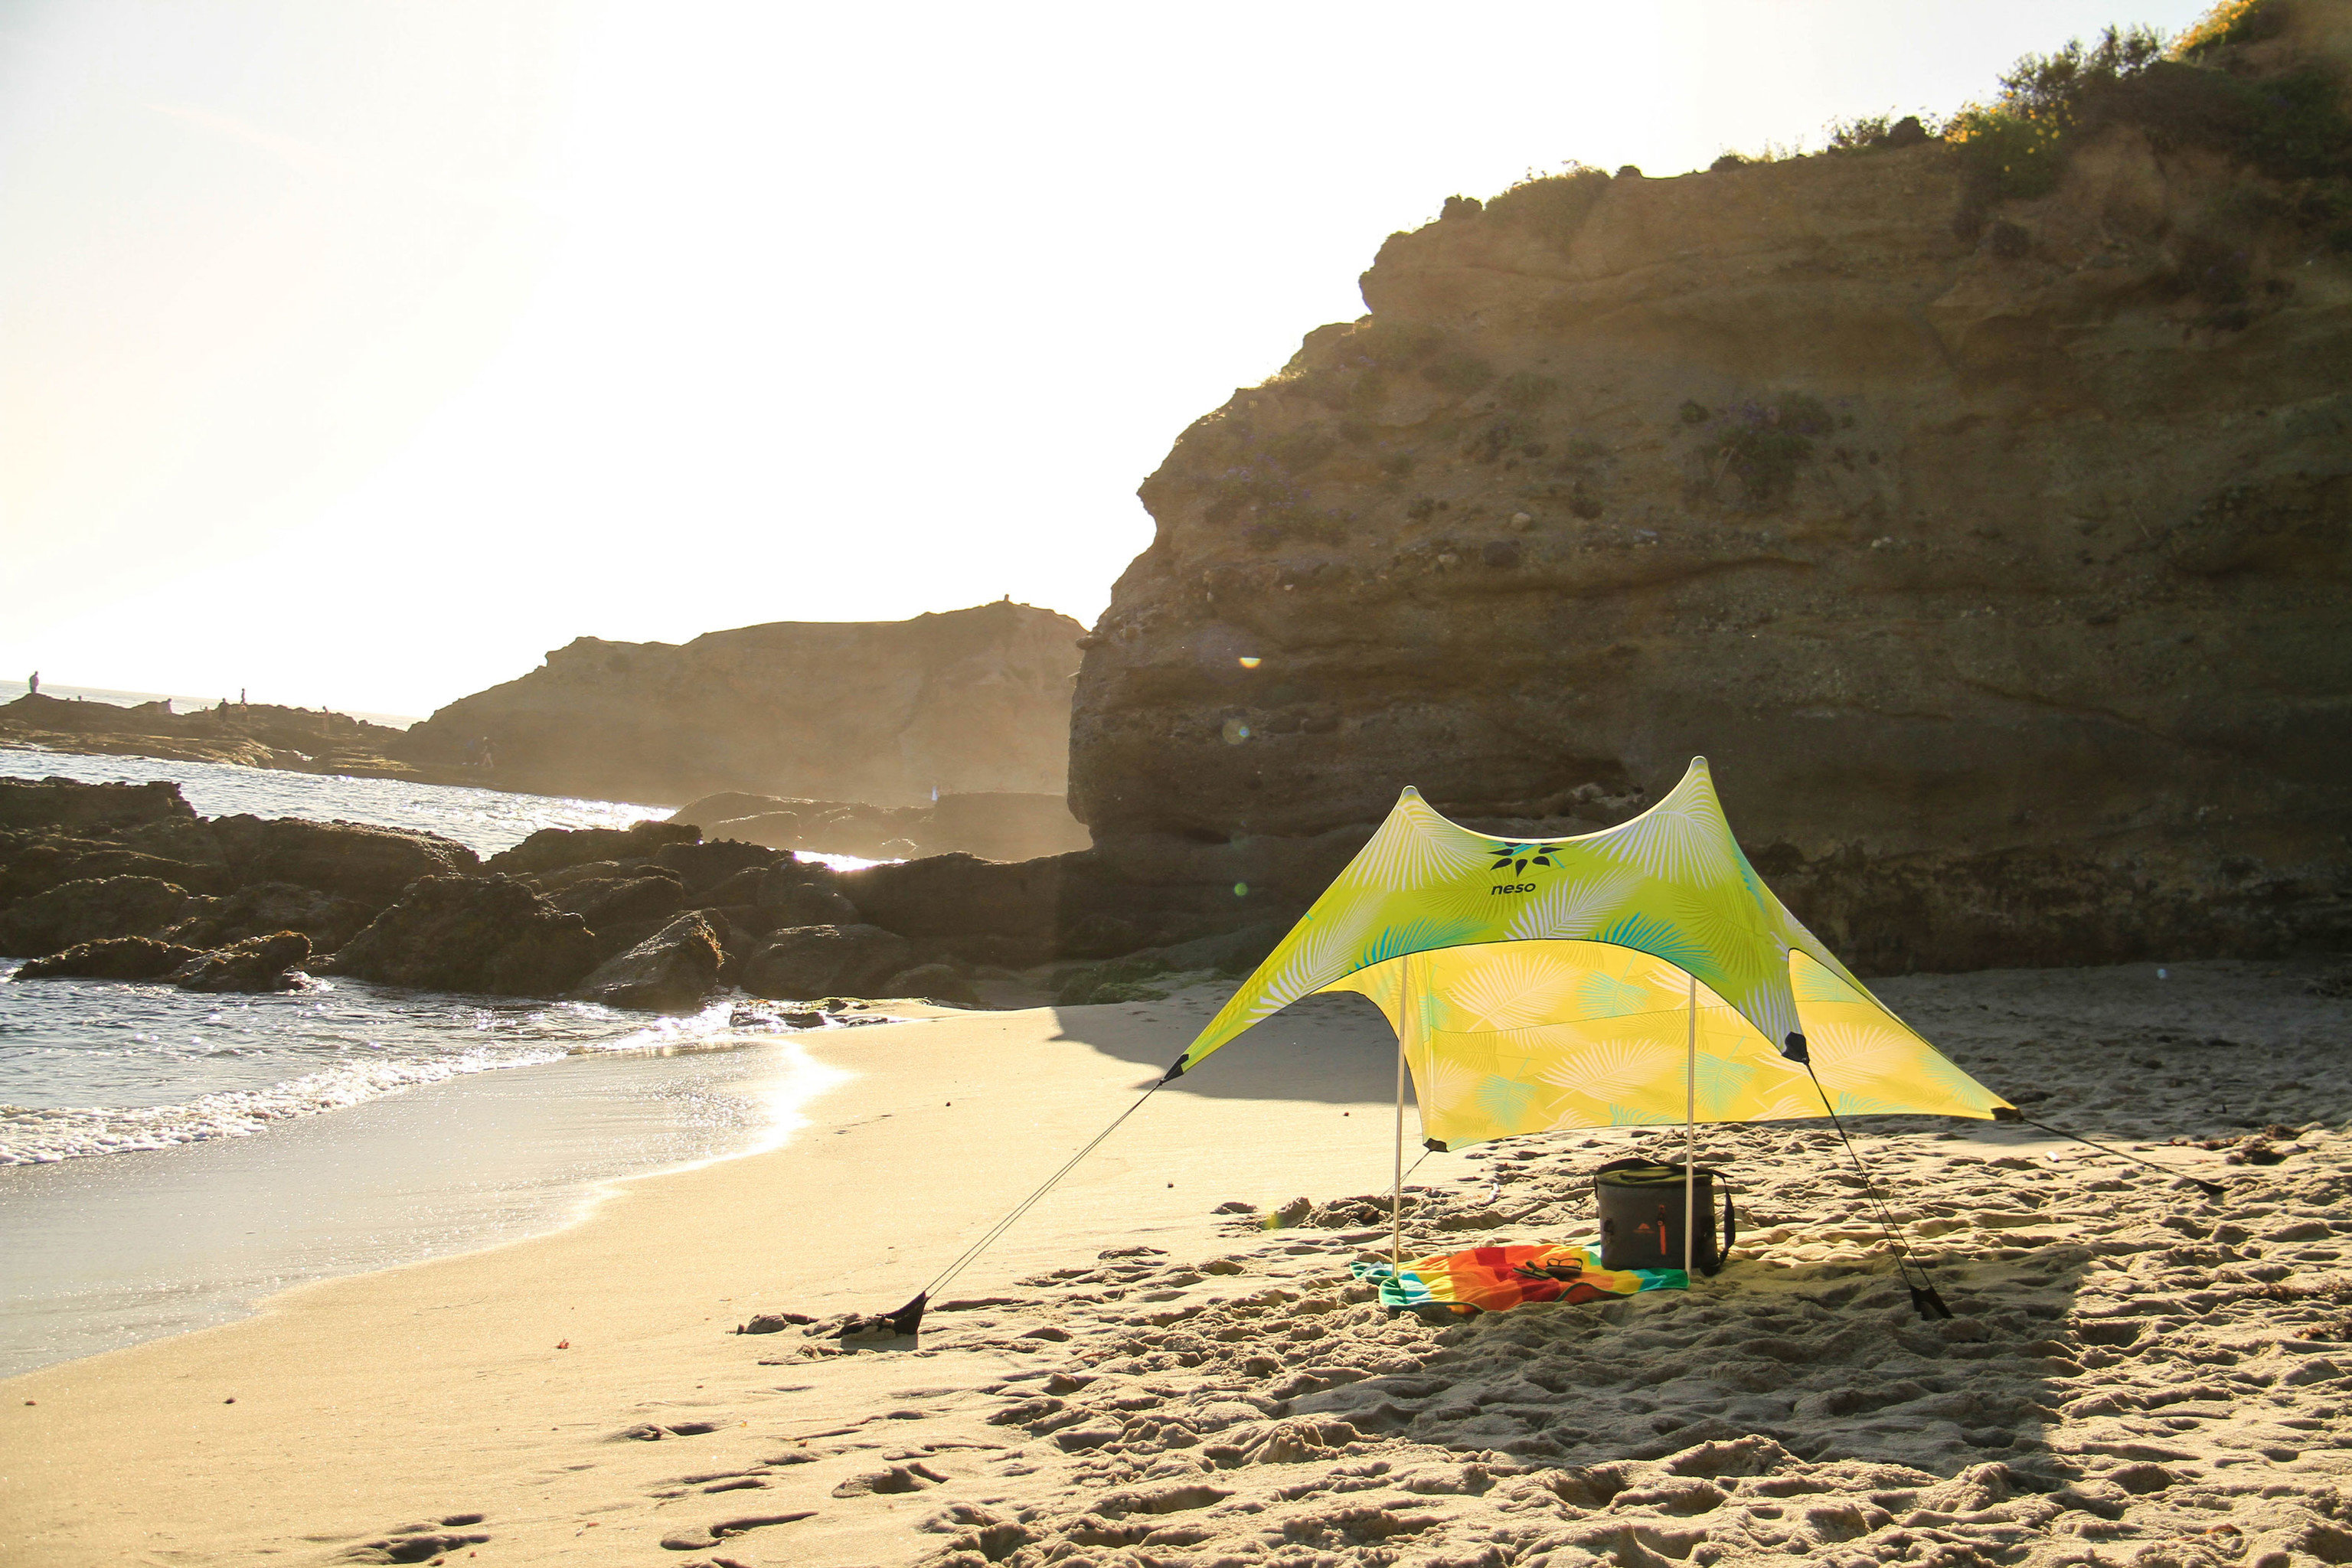 Travel Tips outdoor sky Beach Sea body of water mountain Coast shore Ocean wave sand bay Nature boating vehicle cape sport kite